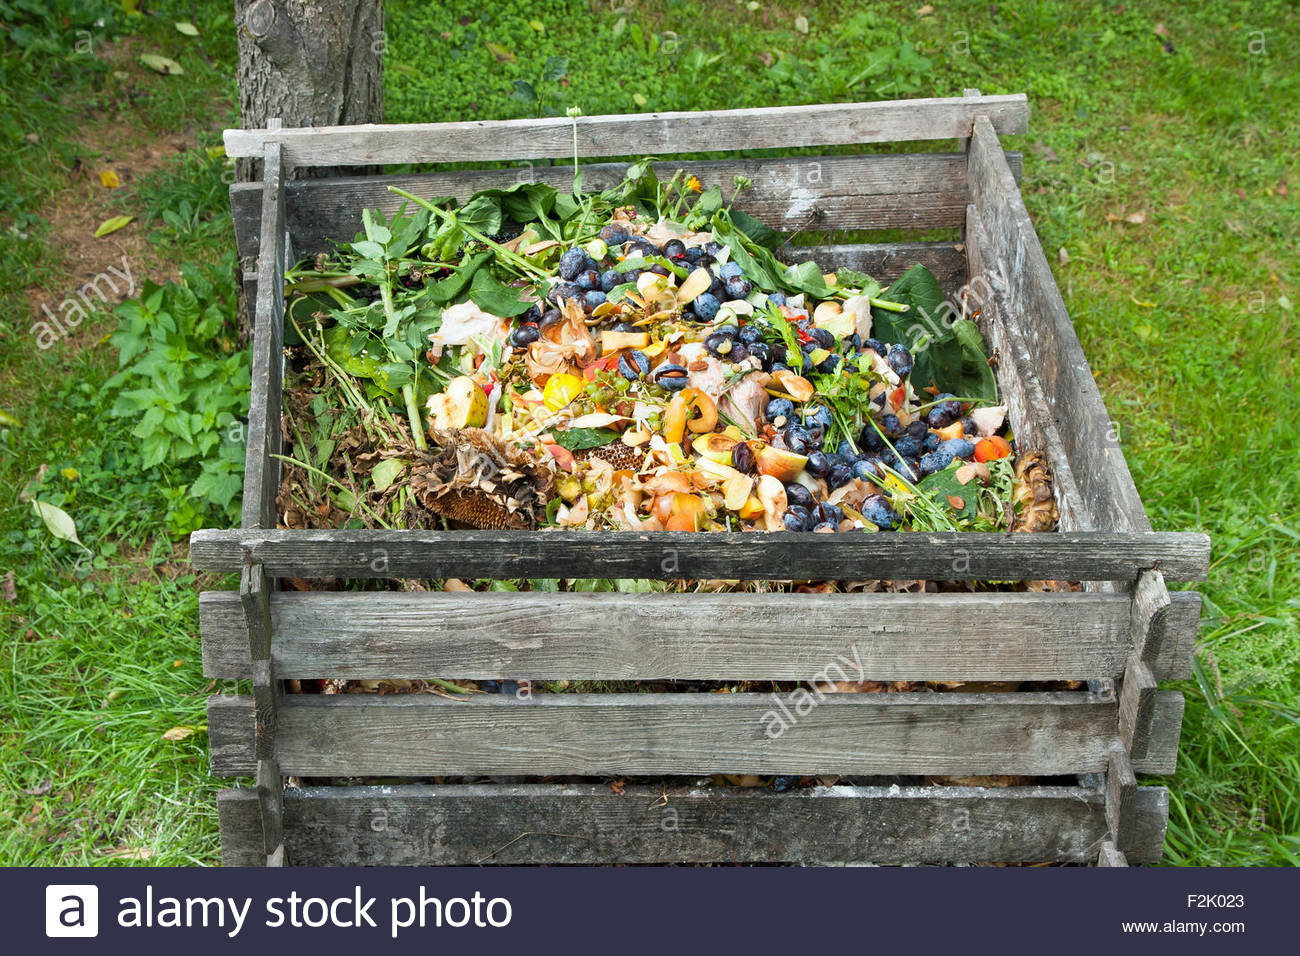 GAR 03 - Workshop: Probiotic Composting and Sustainability in the Urban Home